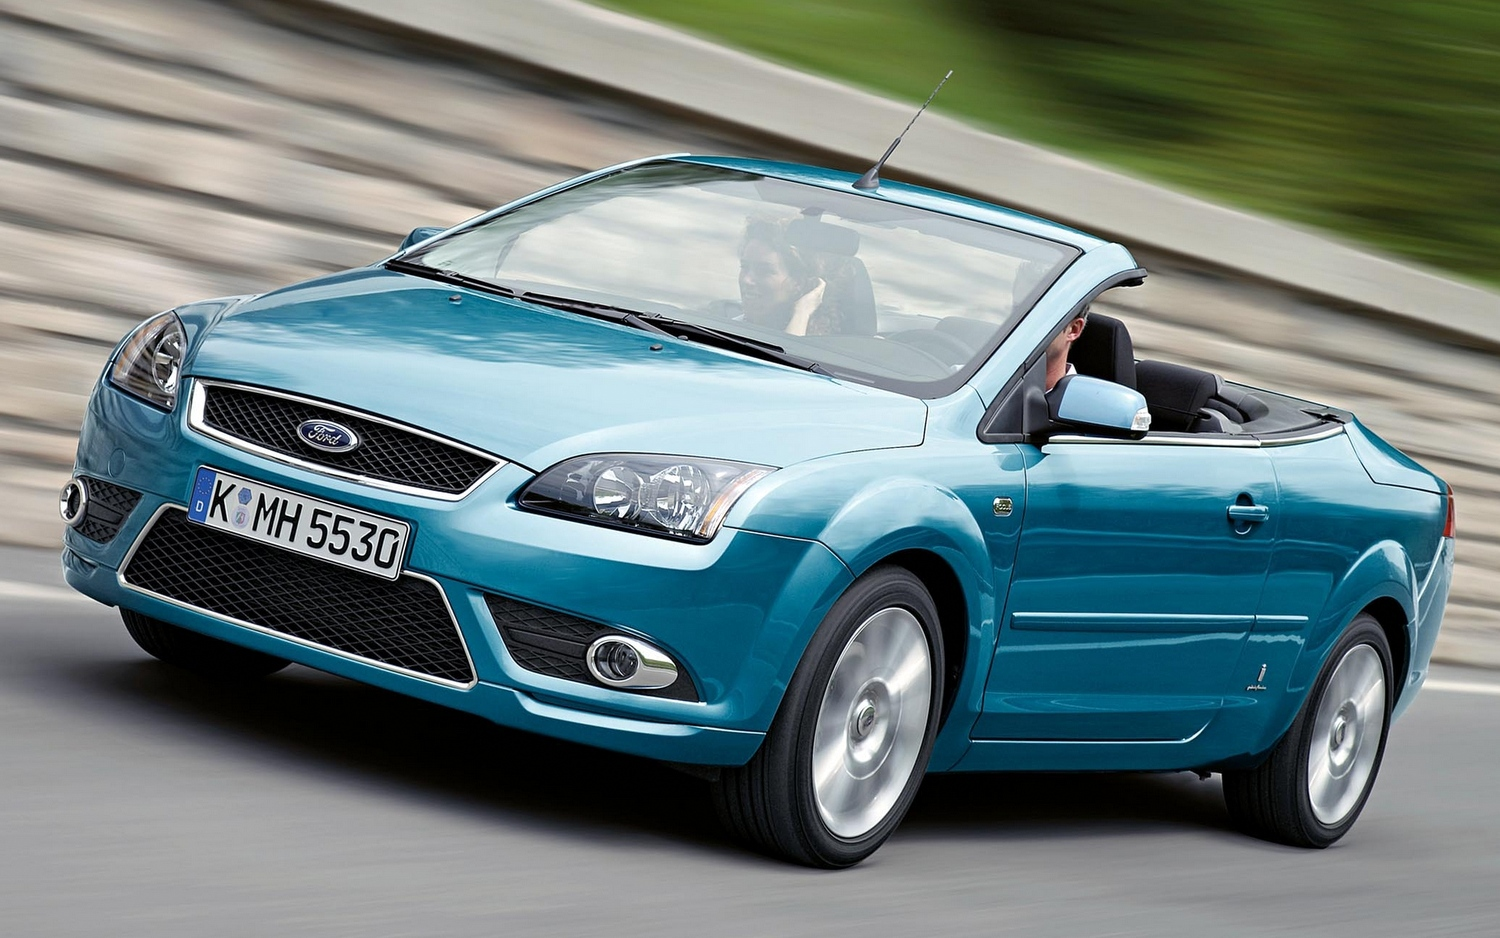 Ford Focus CC Convertible